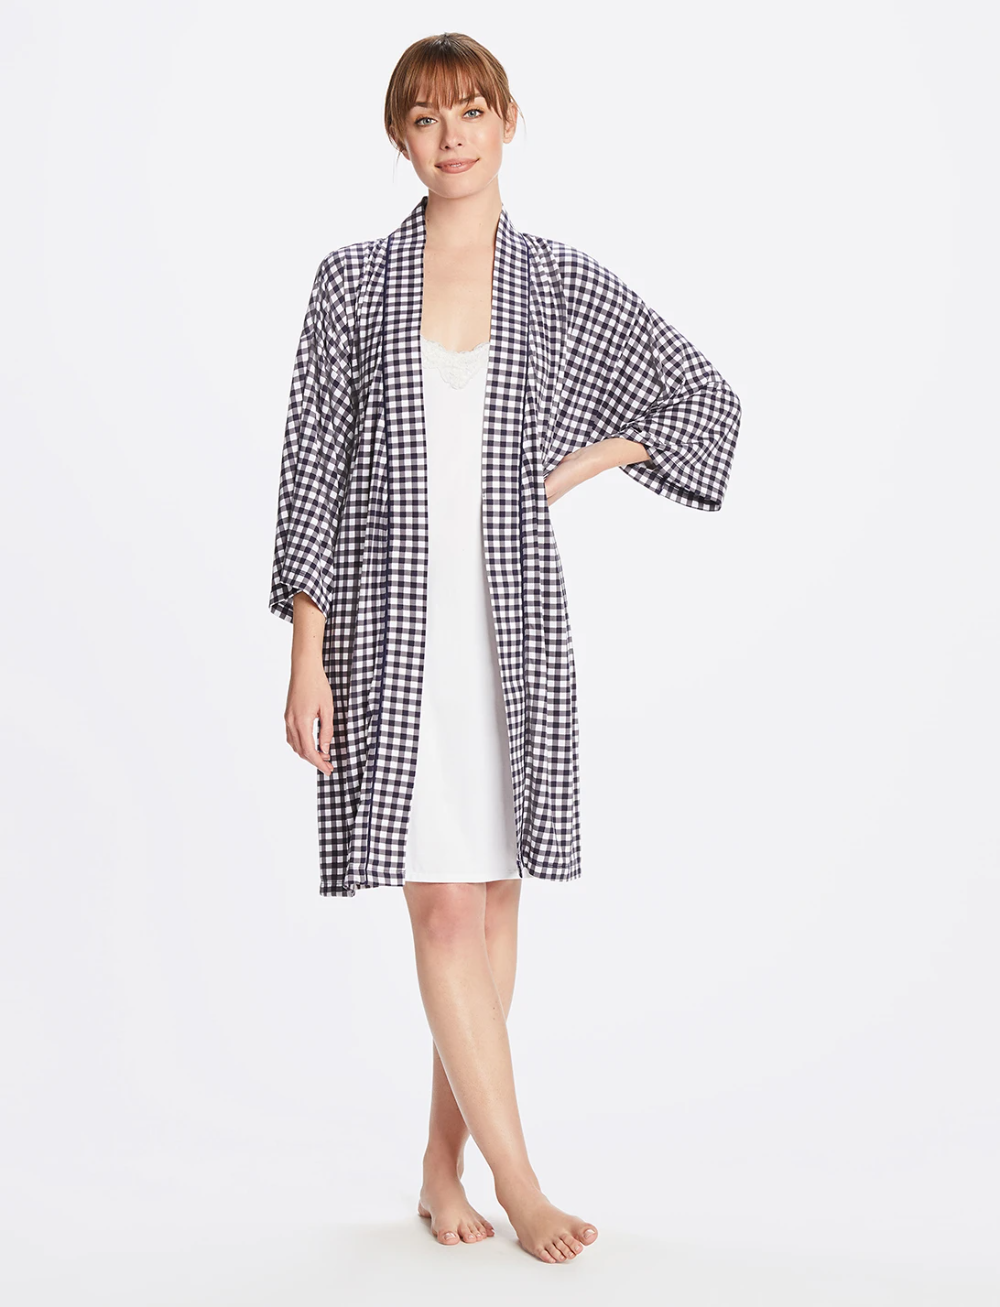 Louise Robe In Gingham In 2020 Gingham Lounge Wear Select Fashion